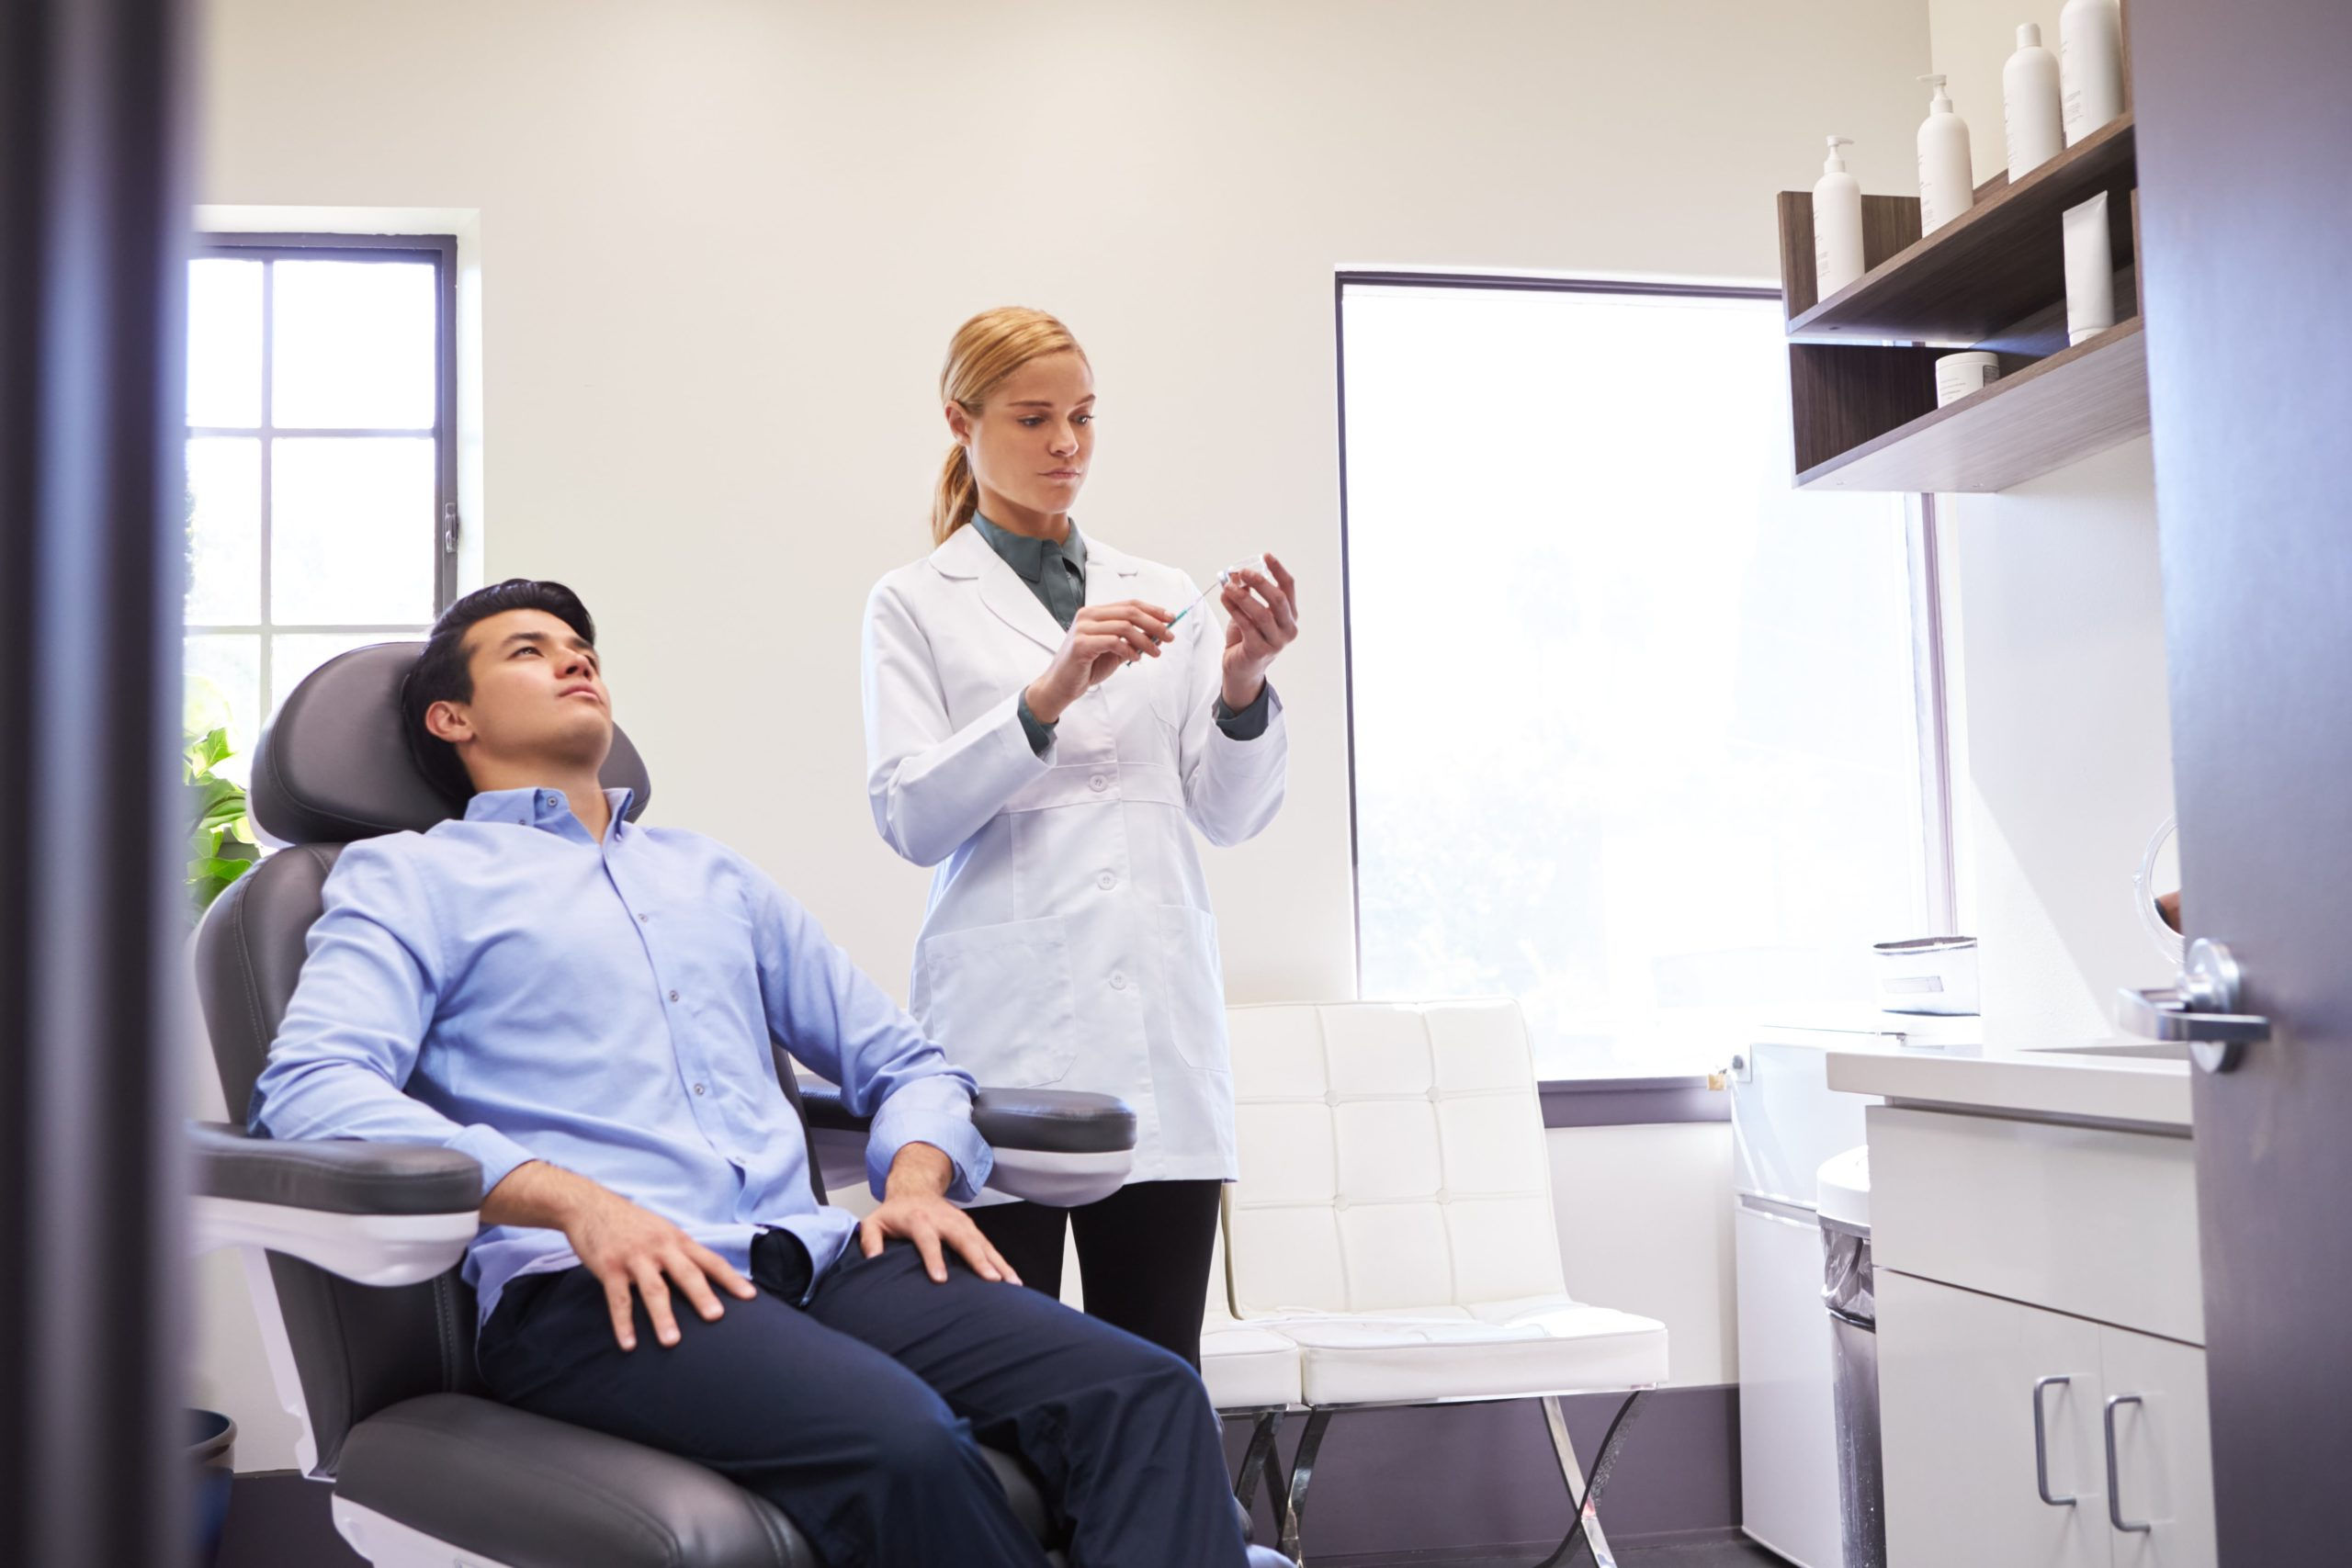 man-sitting-in-chair-being-give-botox-injection